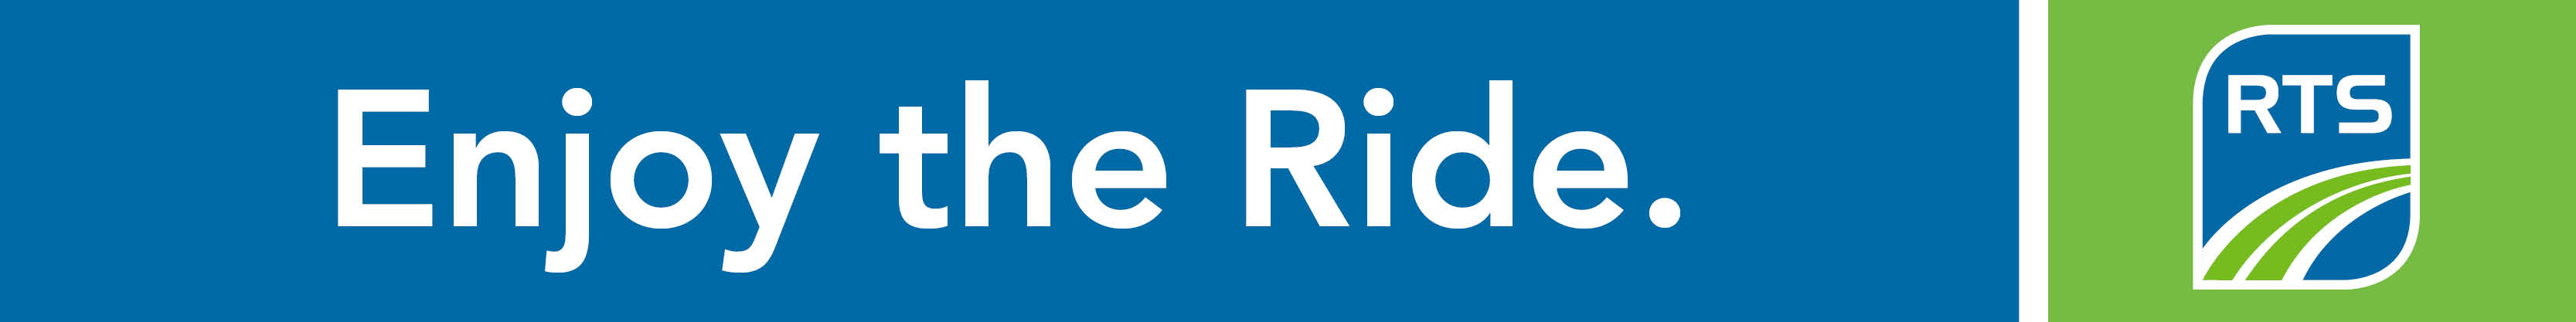 new technology means improved customer service > rts regional new technology means improved customer service > rts regional transit service > enjoy the ride blog